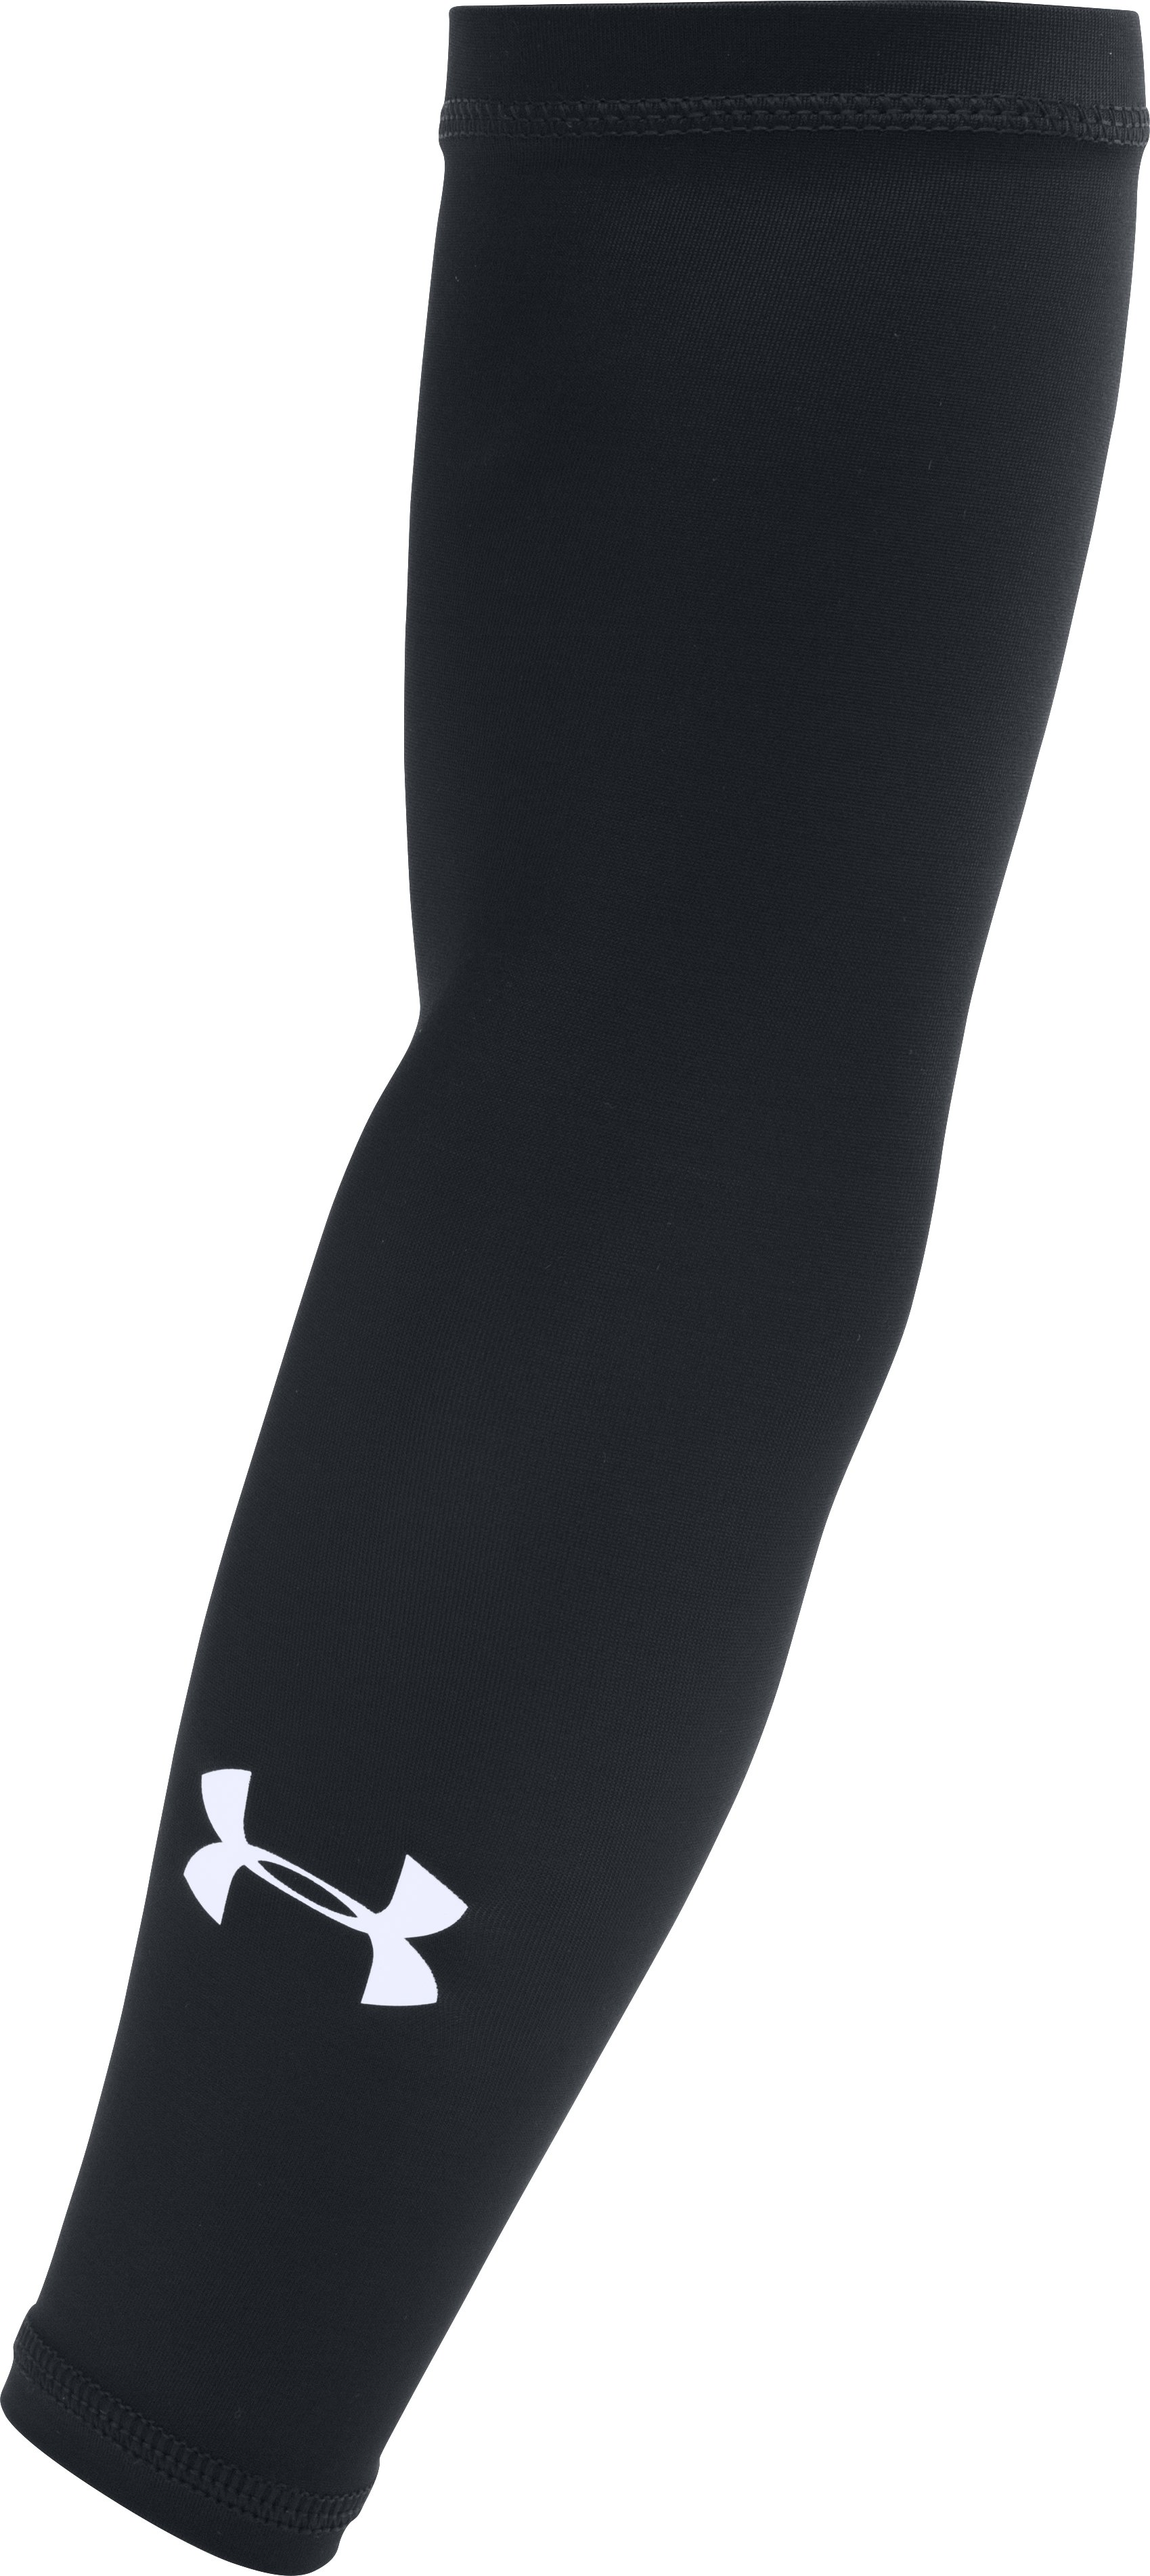 "running arm sleeves Boy's UA Basic Arm Sleeve 4-Way Stretch fabrication is very Compression allows greater mobility in any direction    Moisture Transport System.Tthe Length of it (13"") is very suitable for little guy....But HeatGear fabric is very comfortable enough to be worn all day."